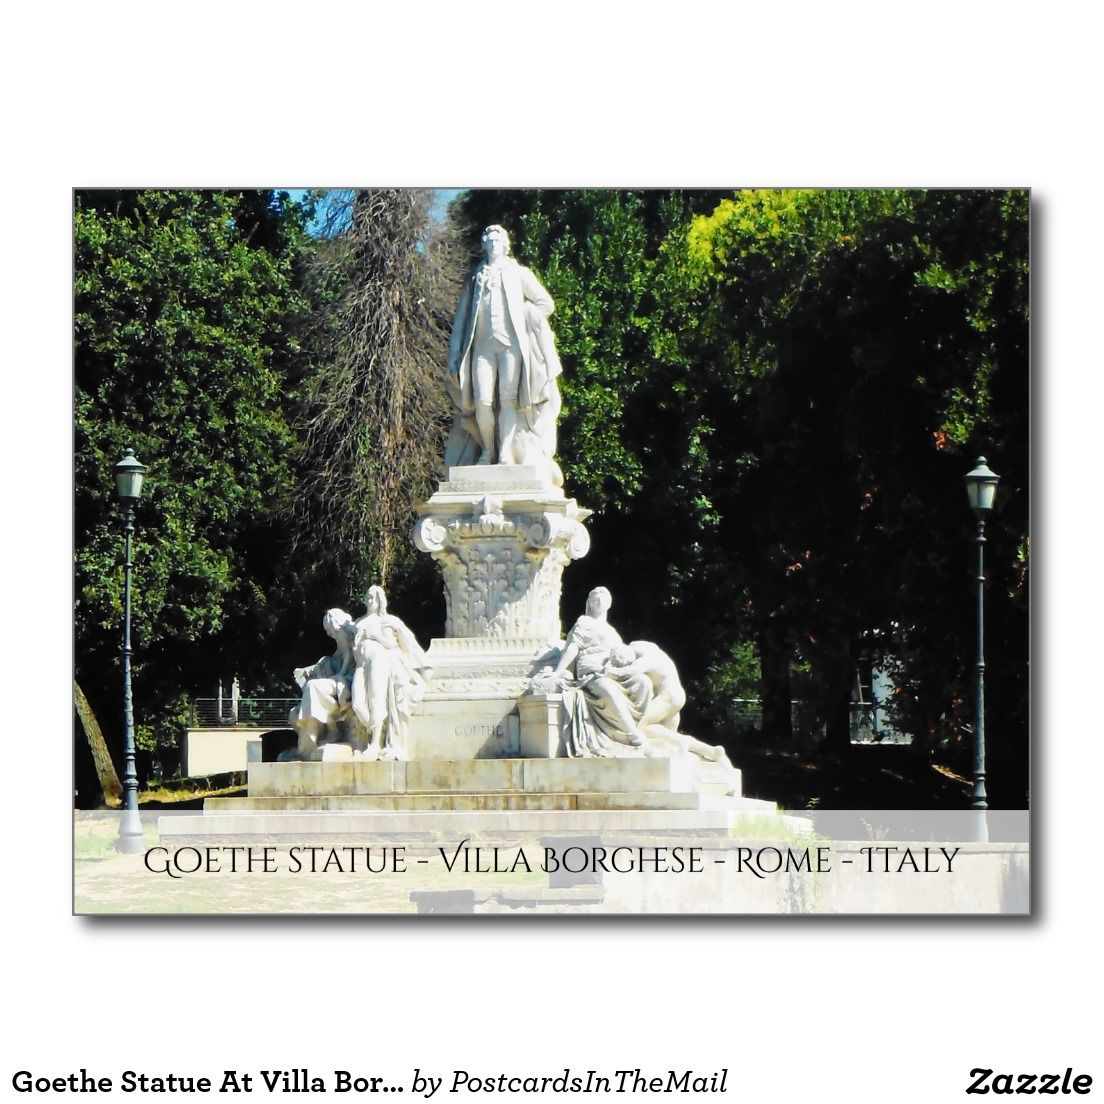 Goethe Statue At Villa Borghese In Rome, Italy Postcard